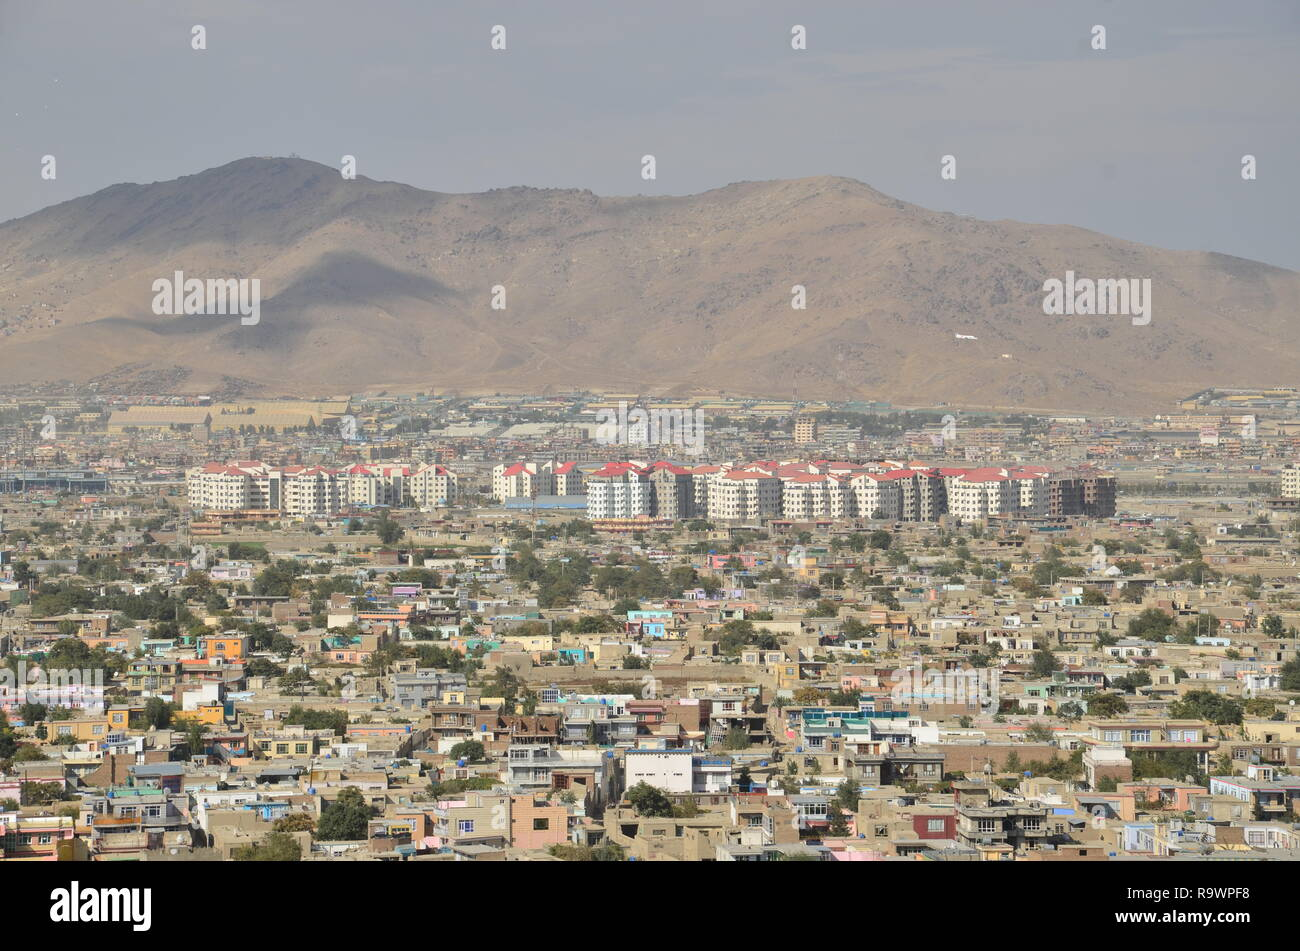 A view of Kabul city, Afghanistan. Stock Photo